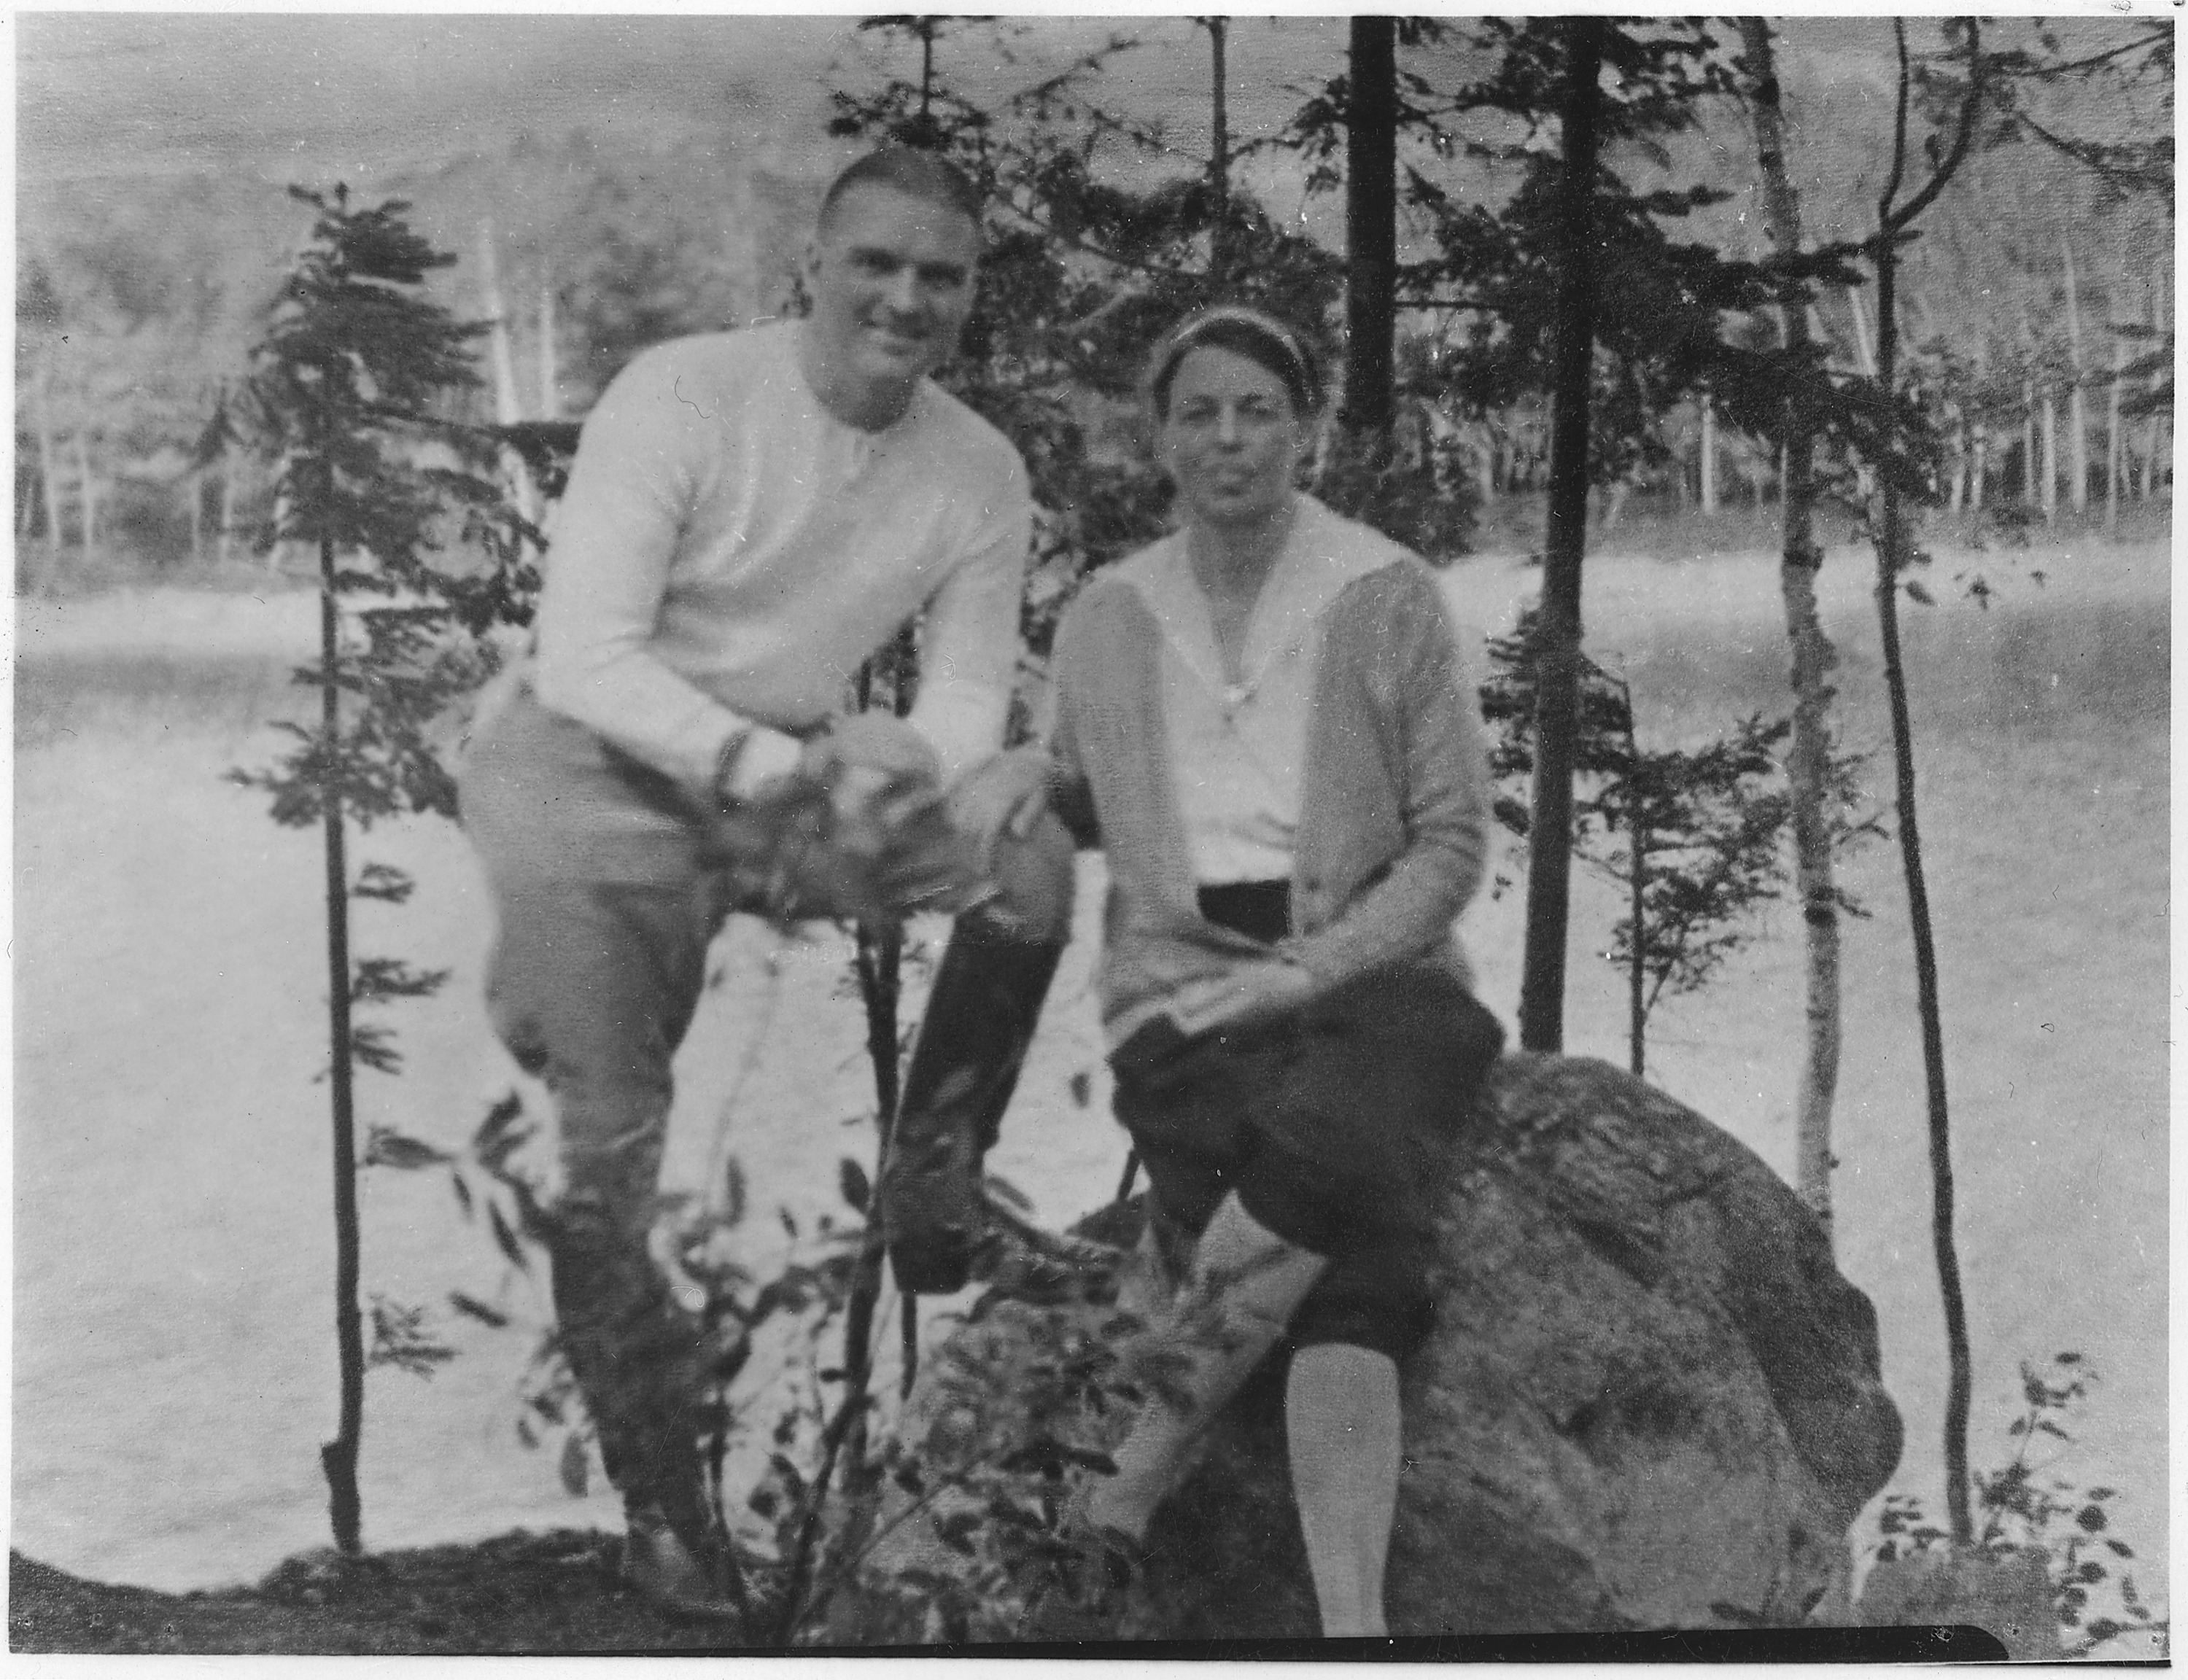 Eleanor_Roosevelt_and_Earl_Miller_at_Chazy_Lake,_New_York_-_NARA_-_197233